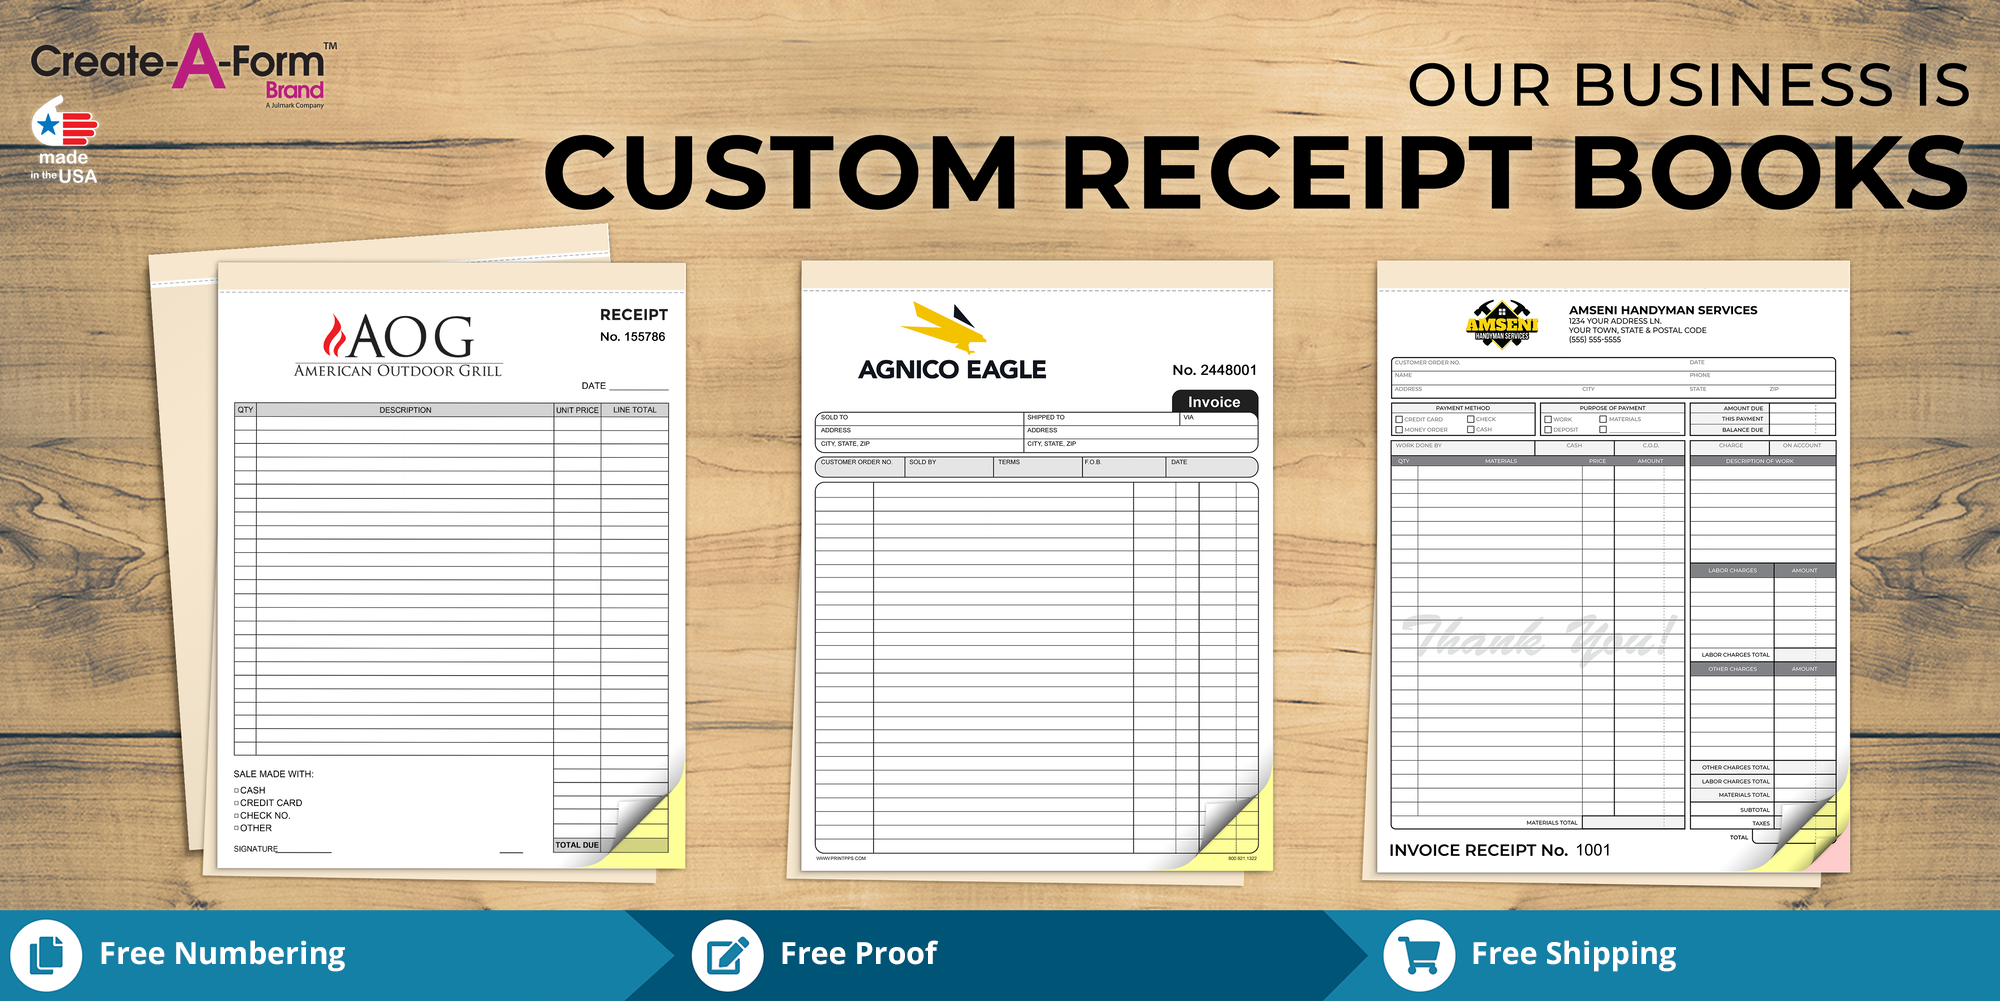 https://printpps.com/images/products_gallery_images/8_5_x_11_Sales_Receipts-banner.png